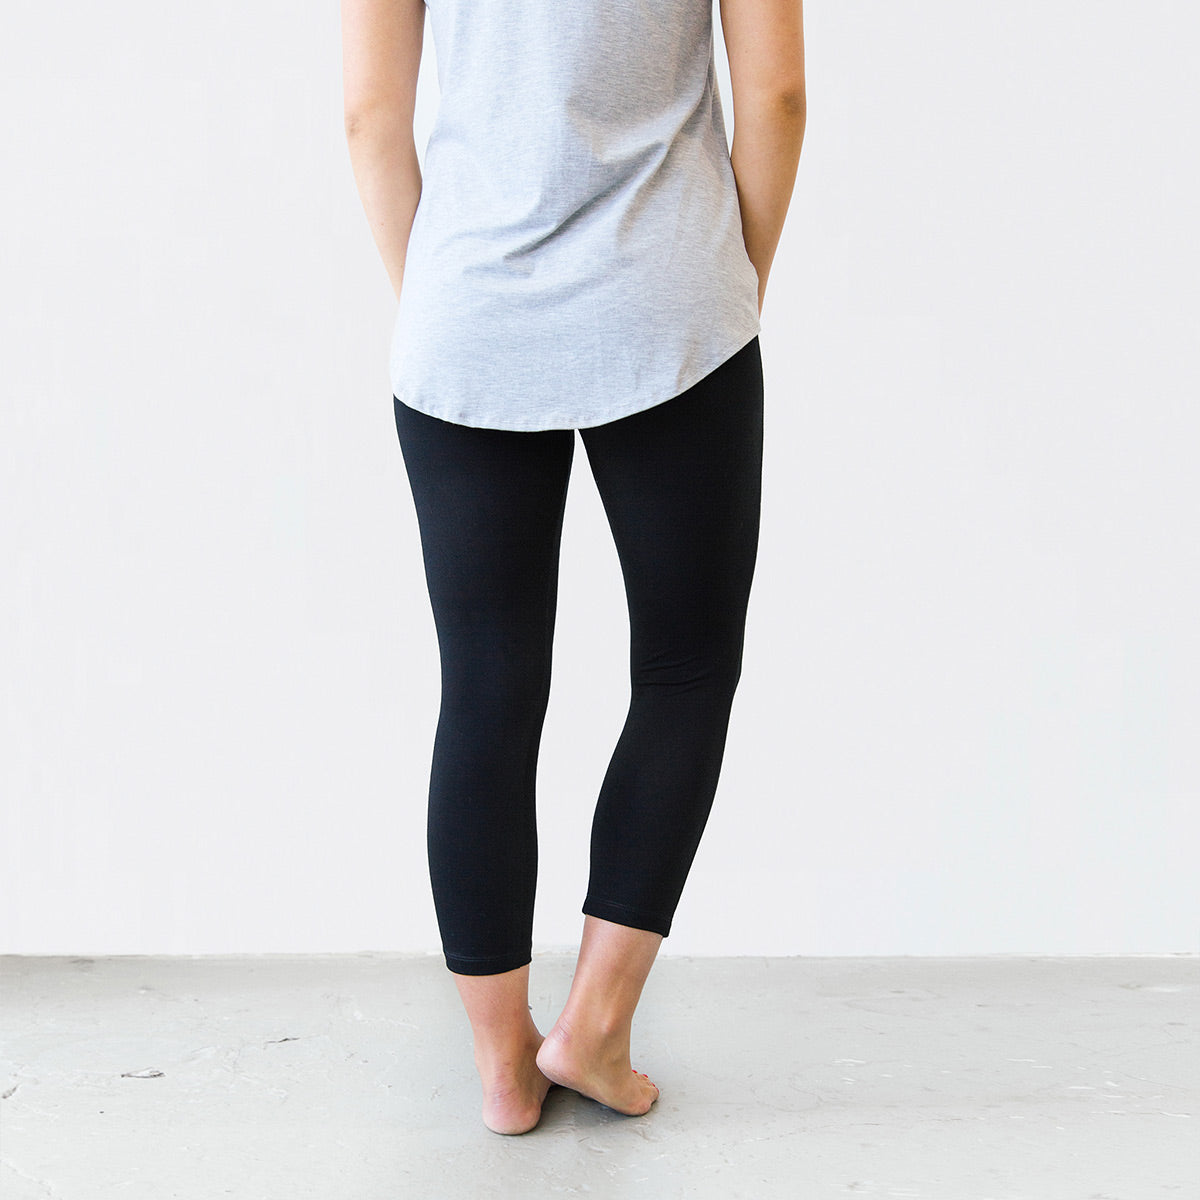 663af2ce429d0 The Minimalist Crop Legging - Cropped Women's Legging Made in Canada ...